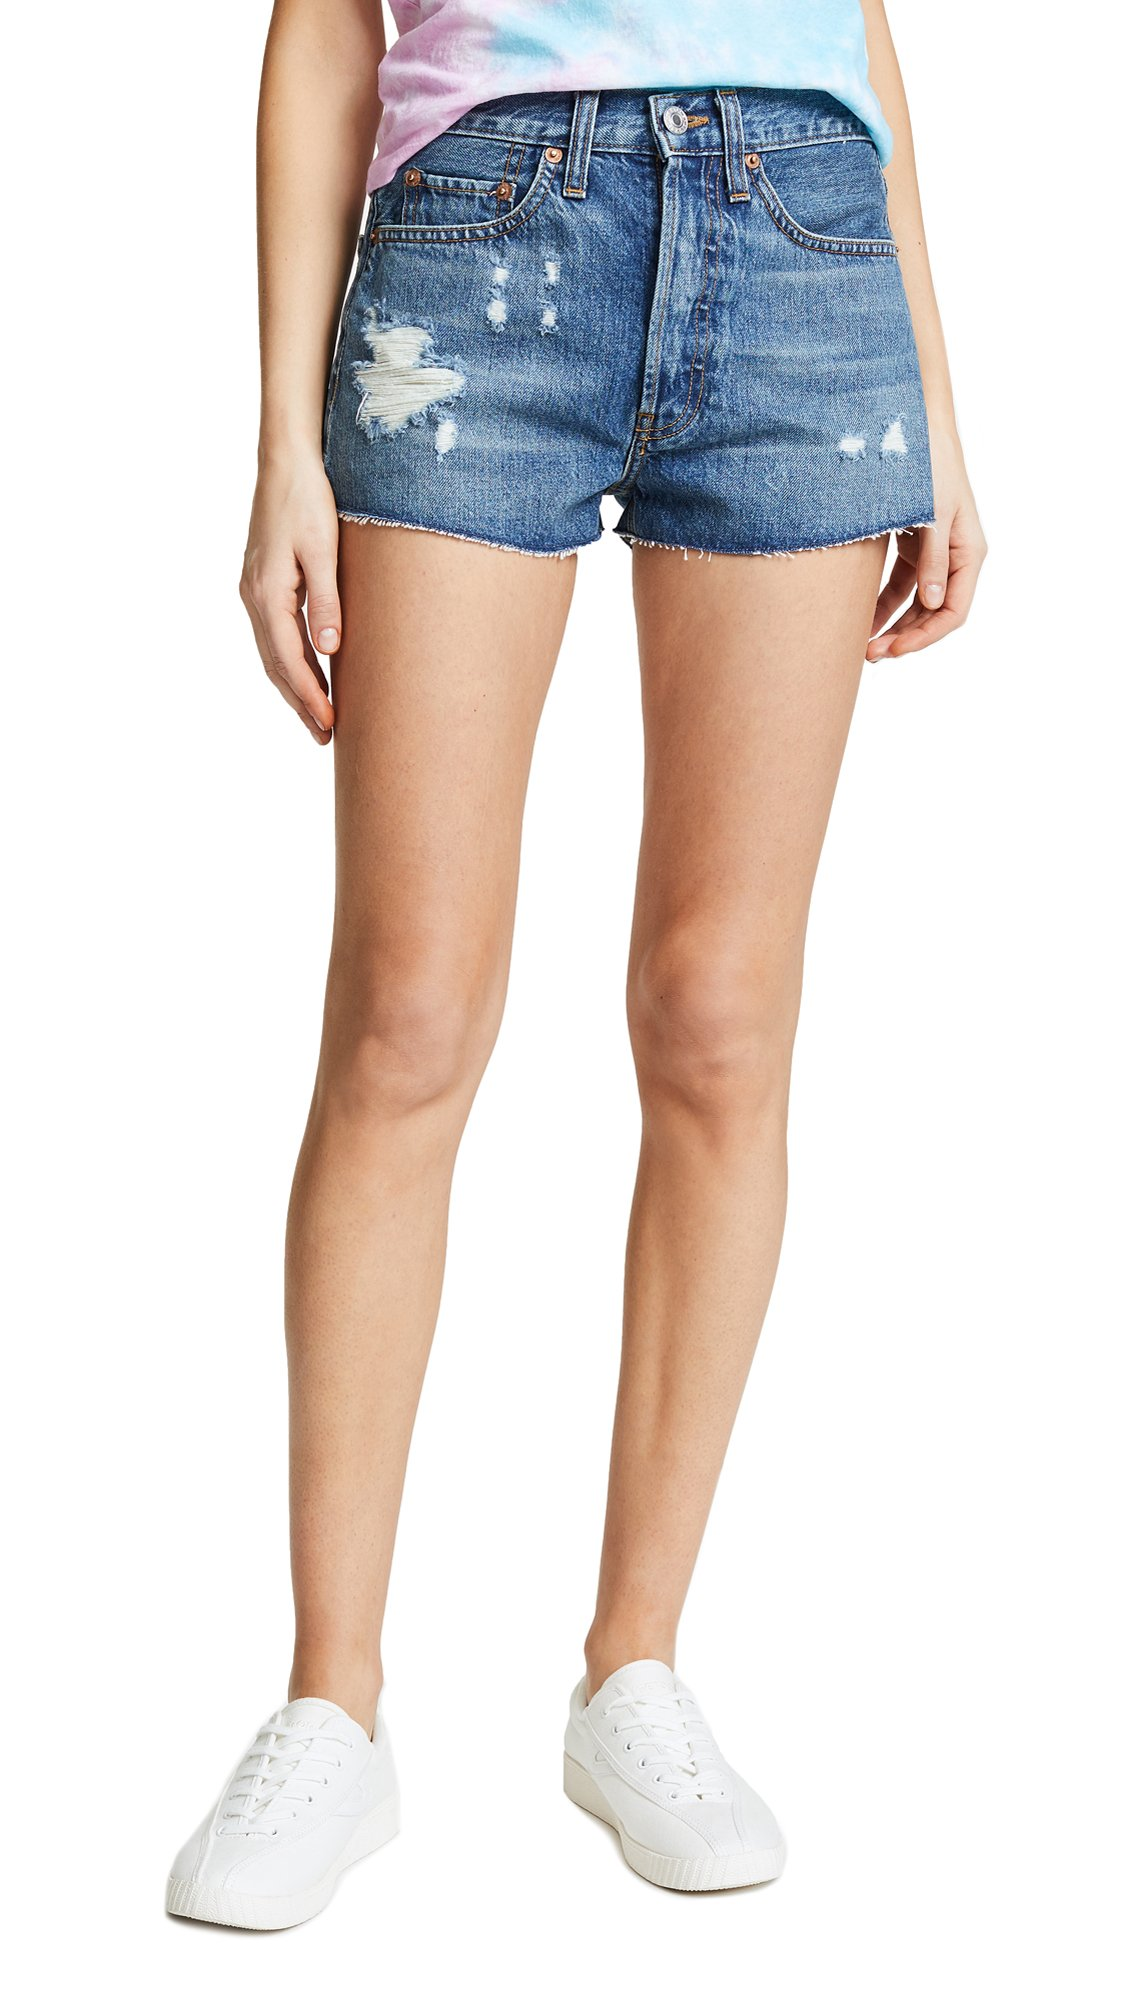 RE/DONE Women's The Shorts, Holey, 29